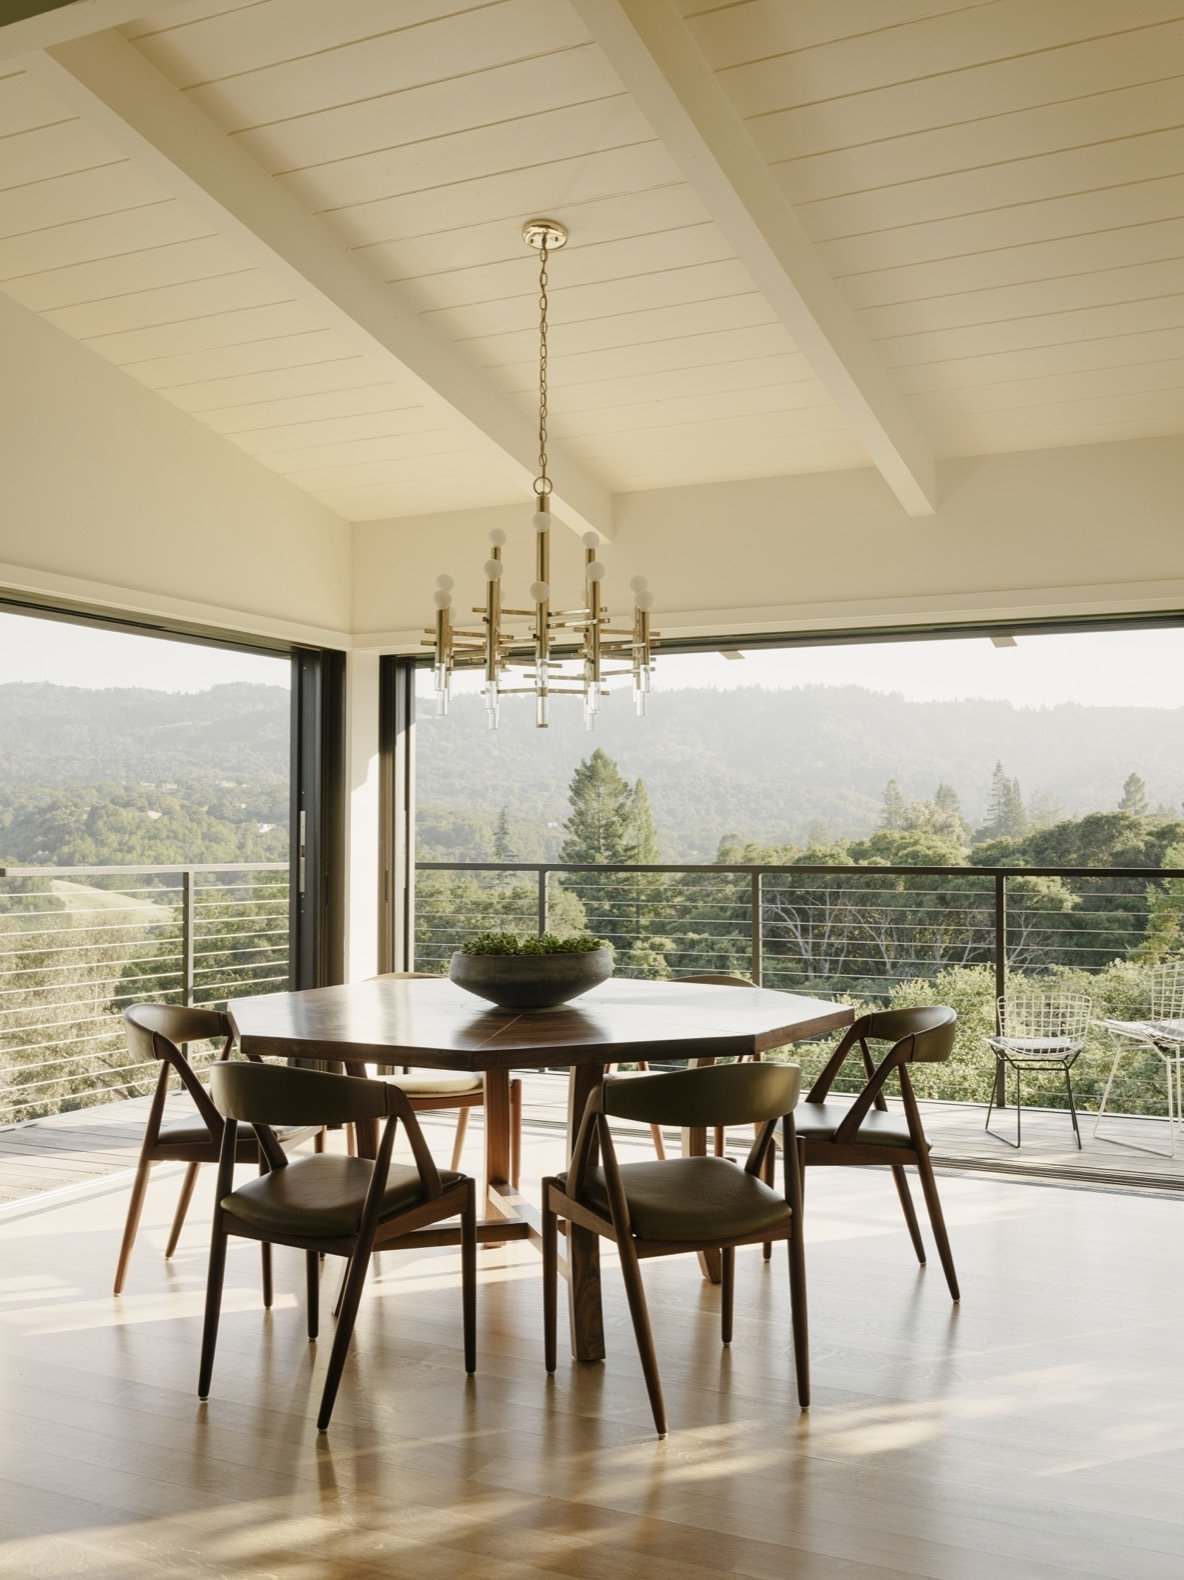 Portola Valley House dining area